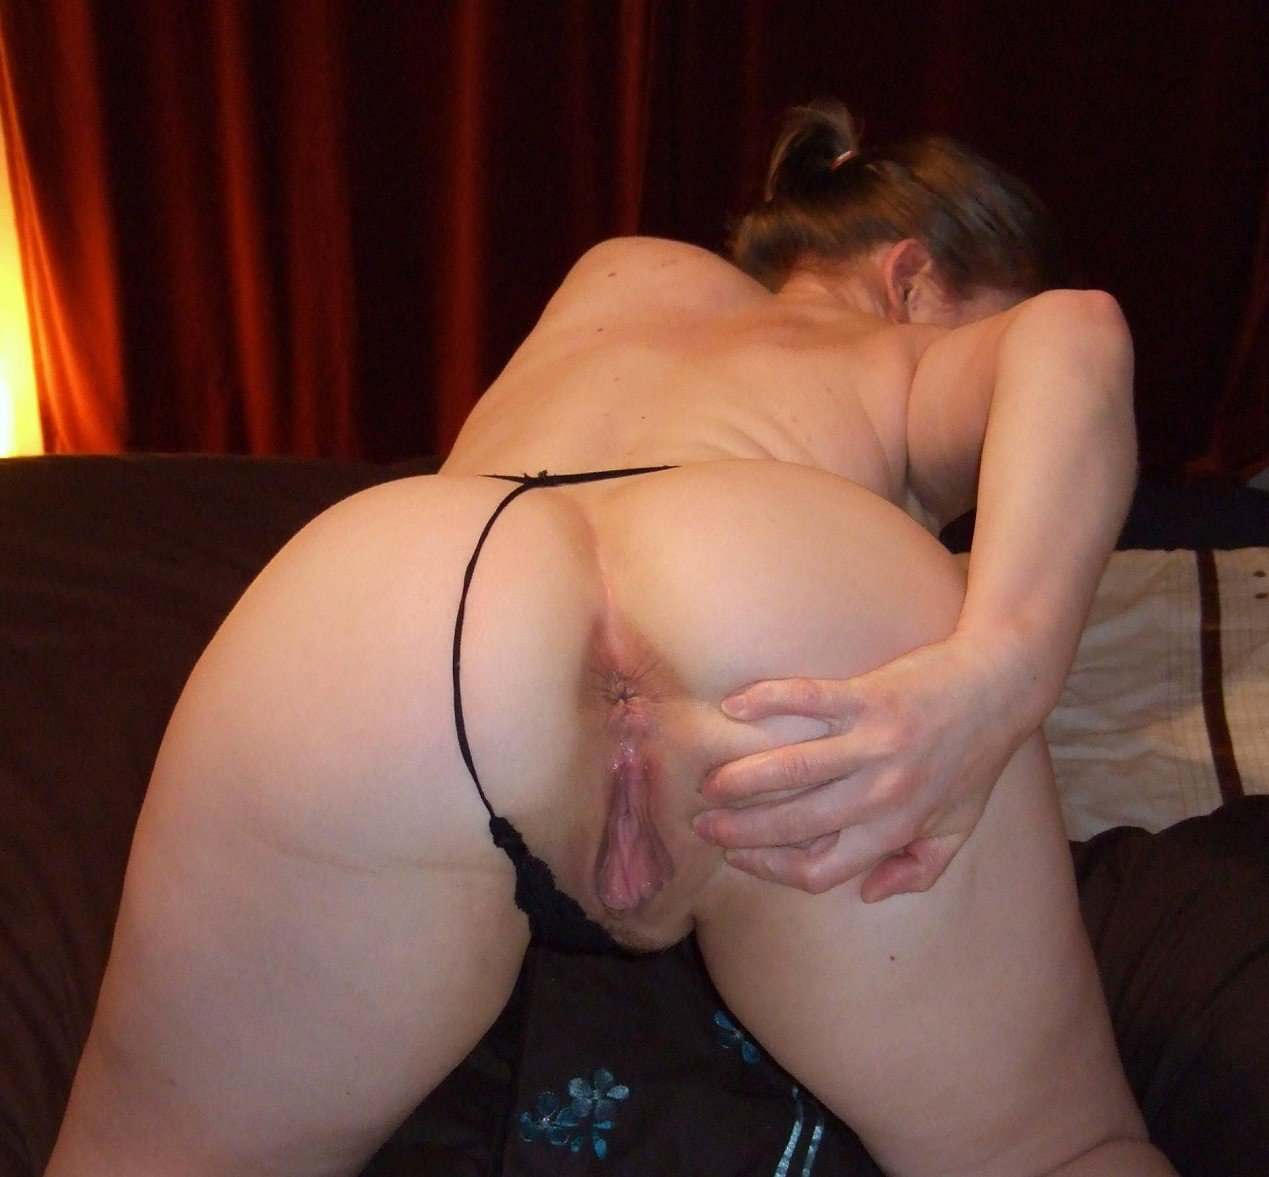 pussybook sex from behind